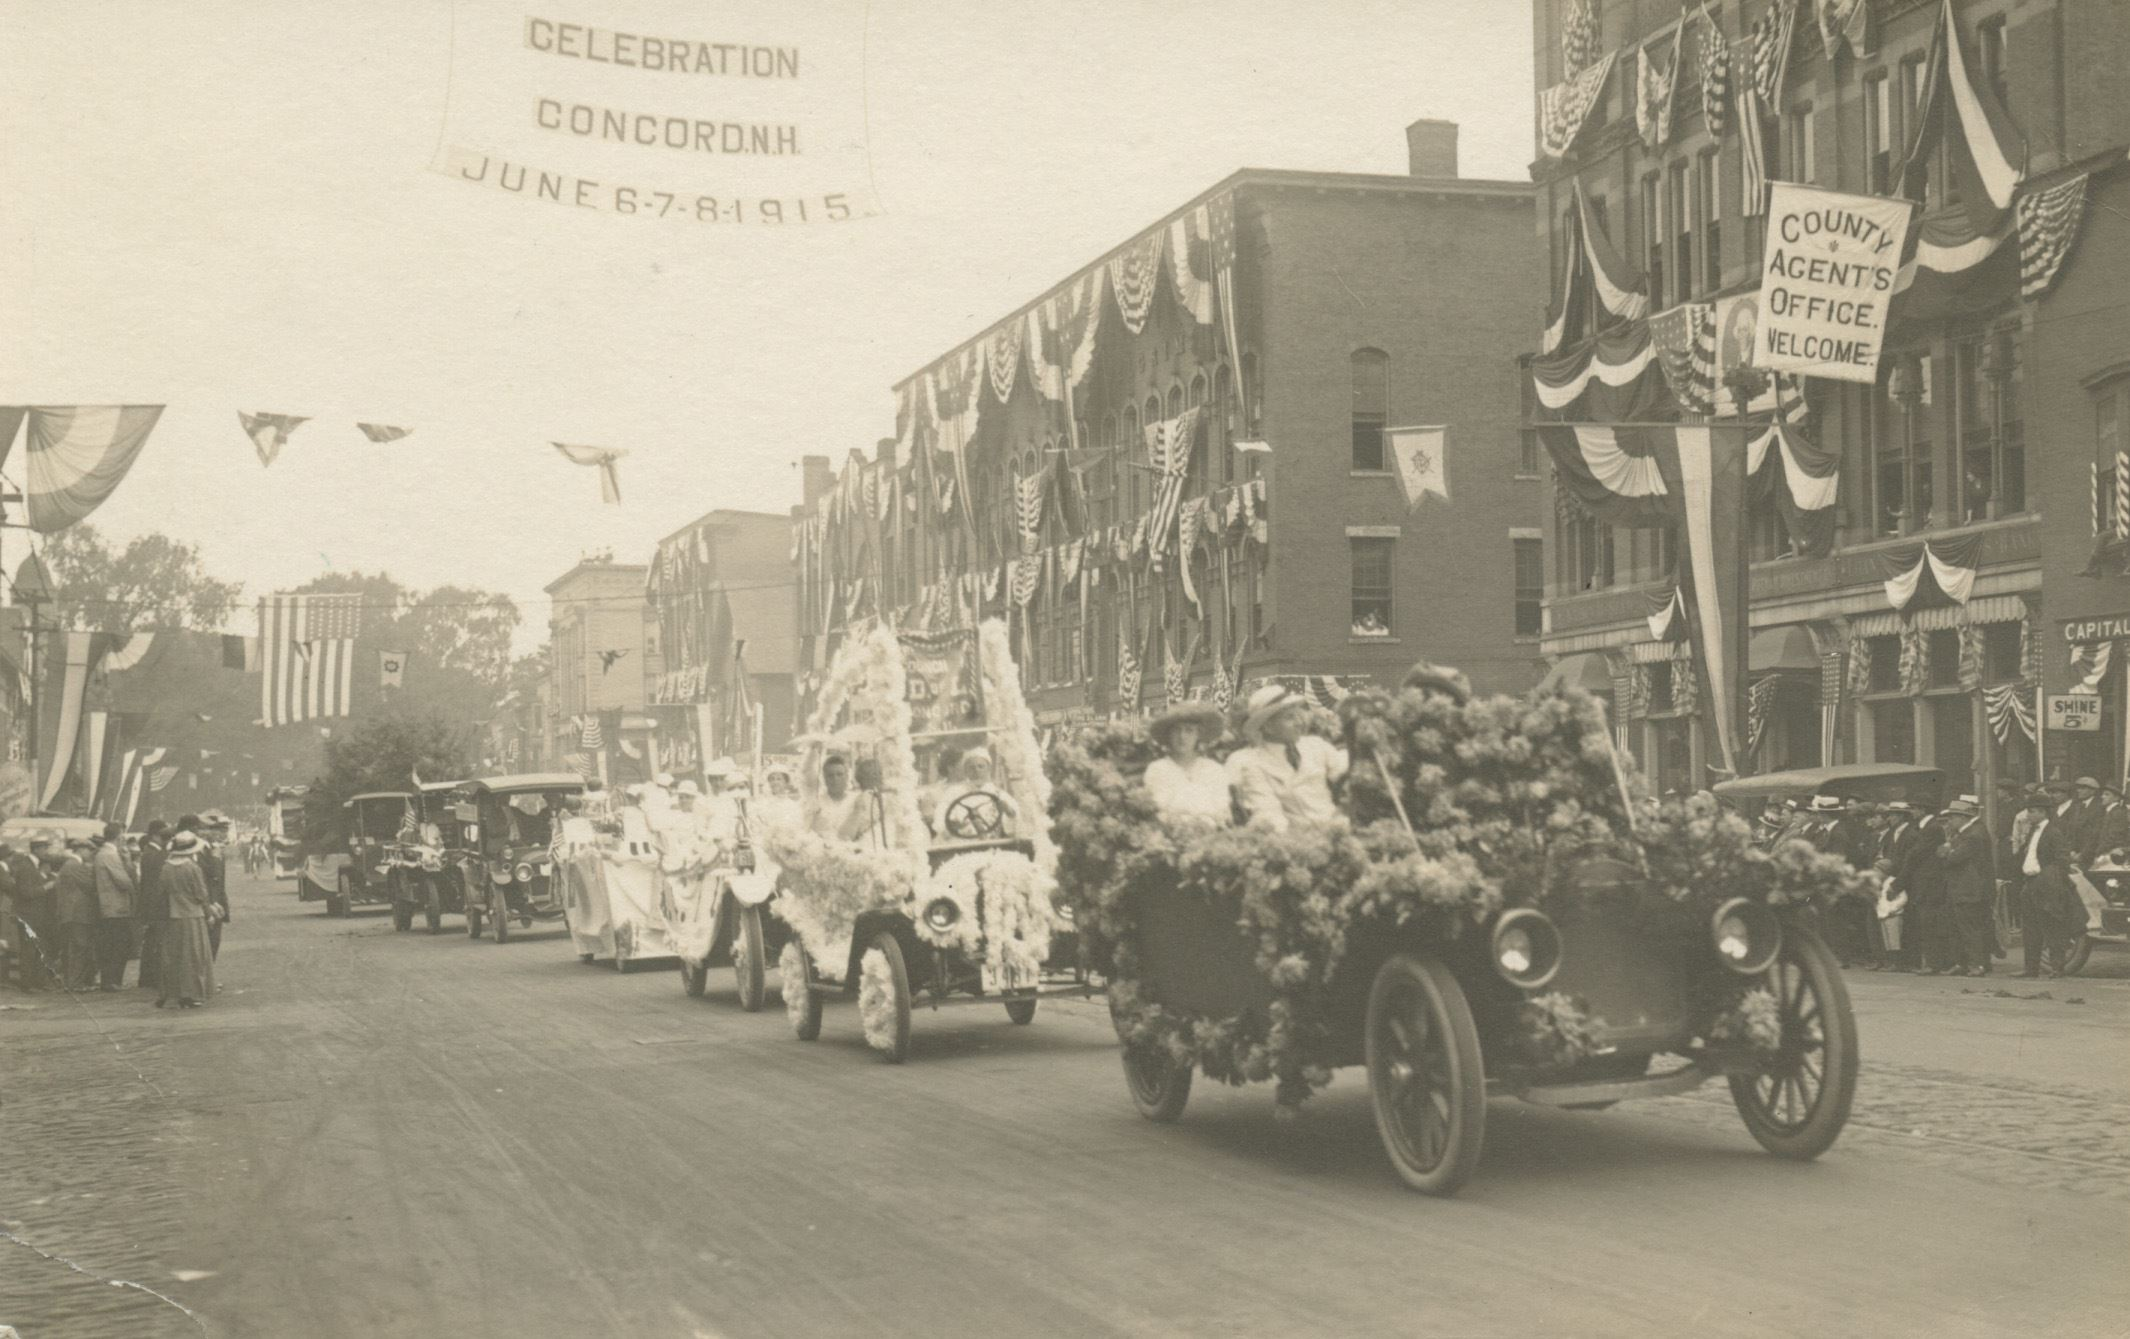 Parade Celebrating the 150th Anniversary of Concord's Charter in June 1915